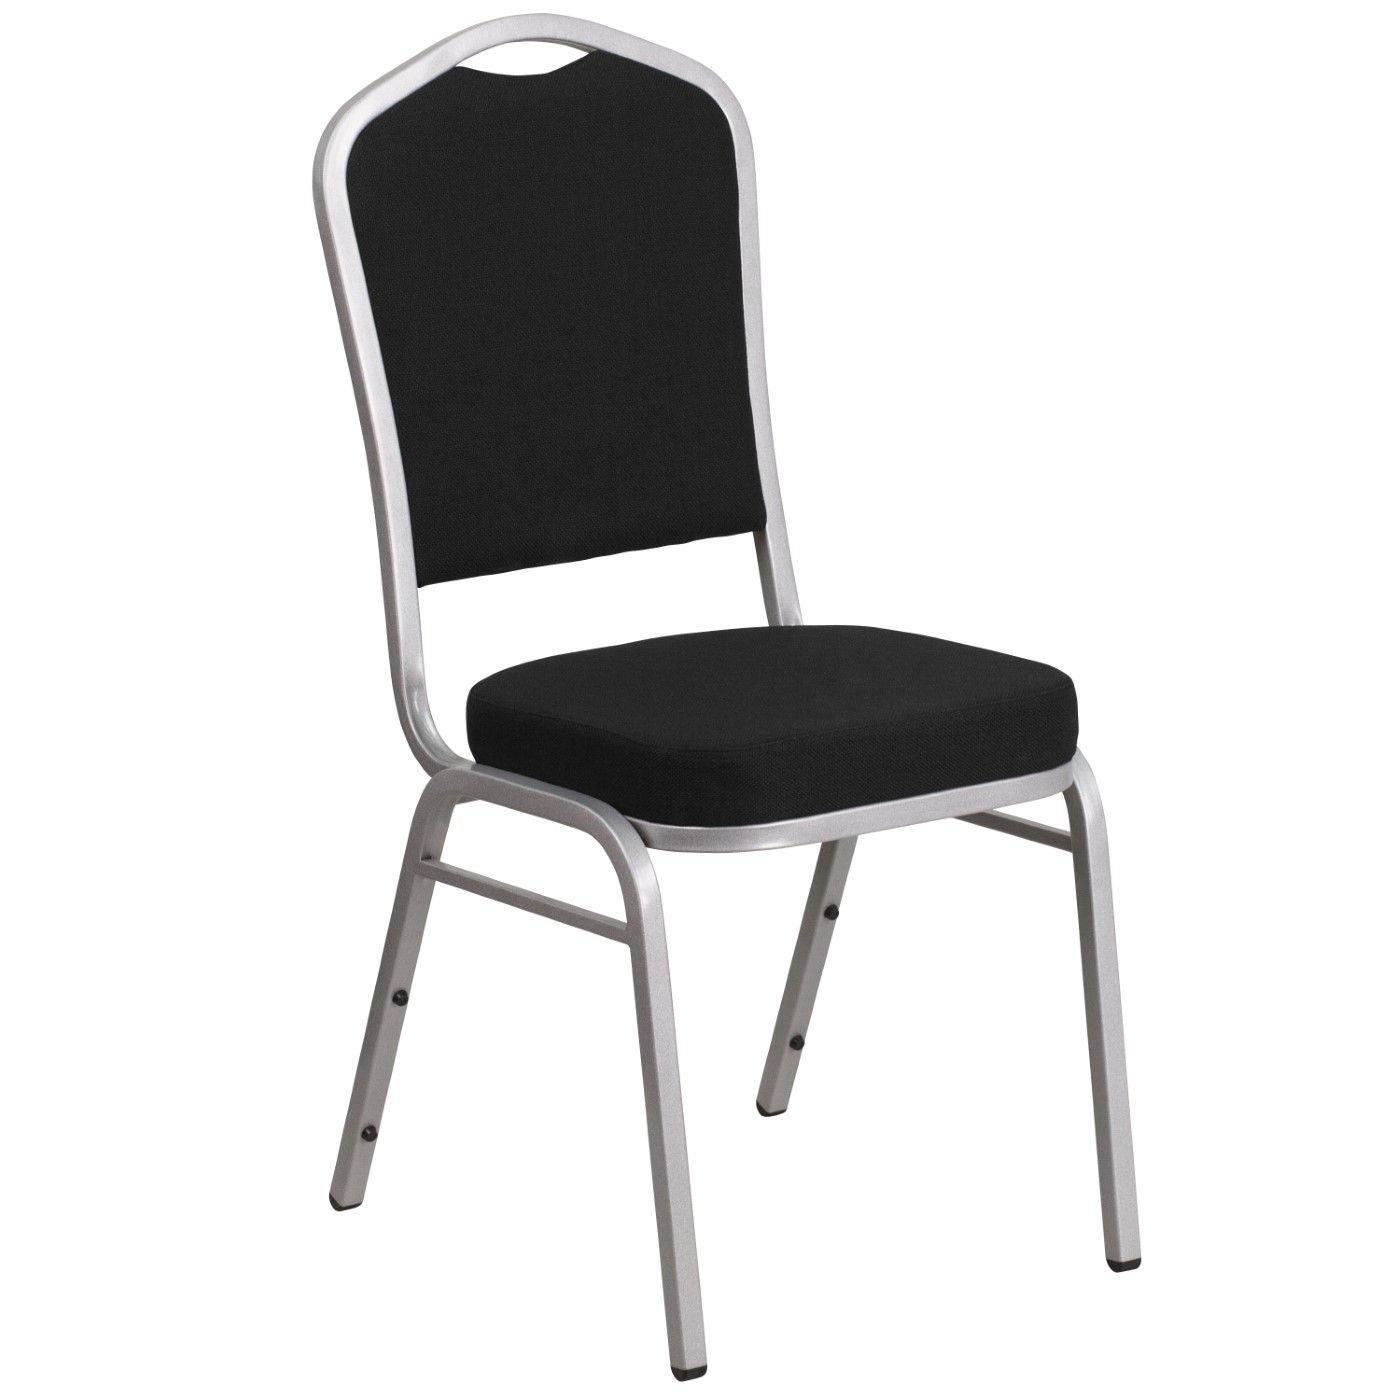 TOUGH ENOUGH Series Crown Back Stacking Banquet Chair in Black Fabric - Silver Frame